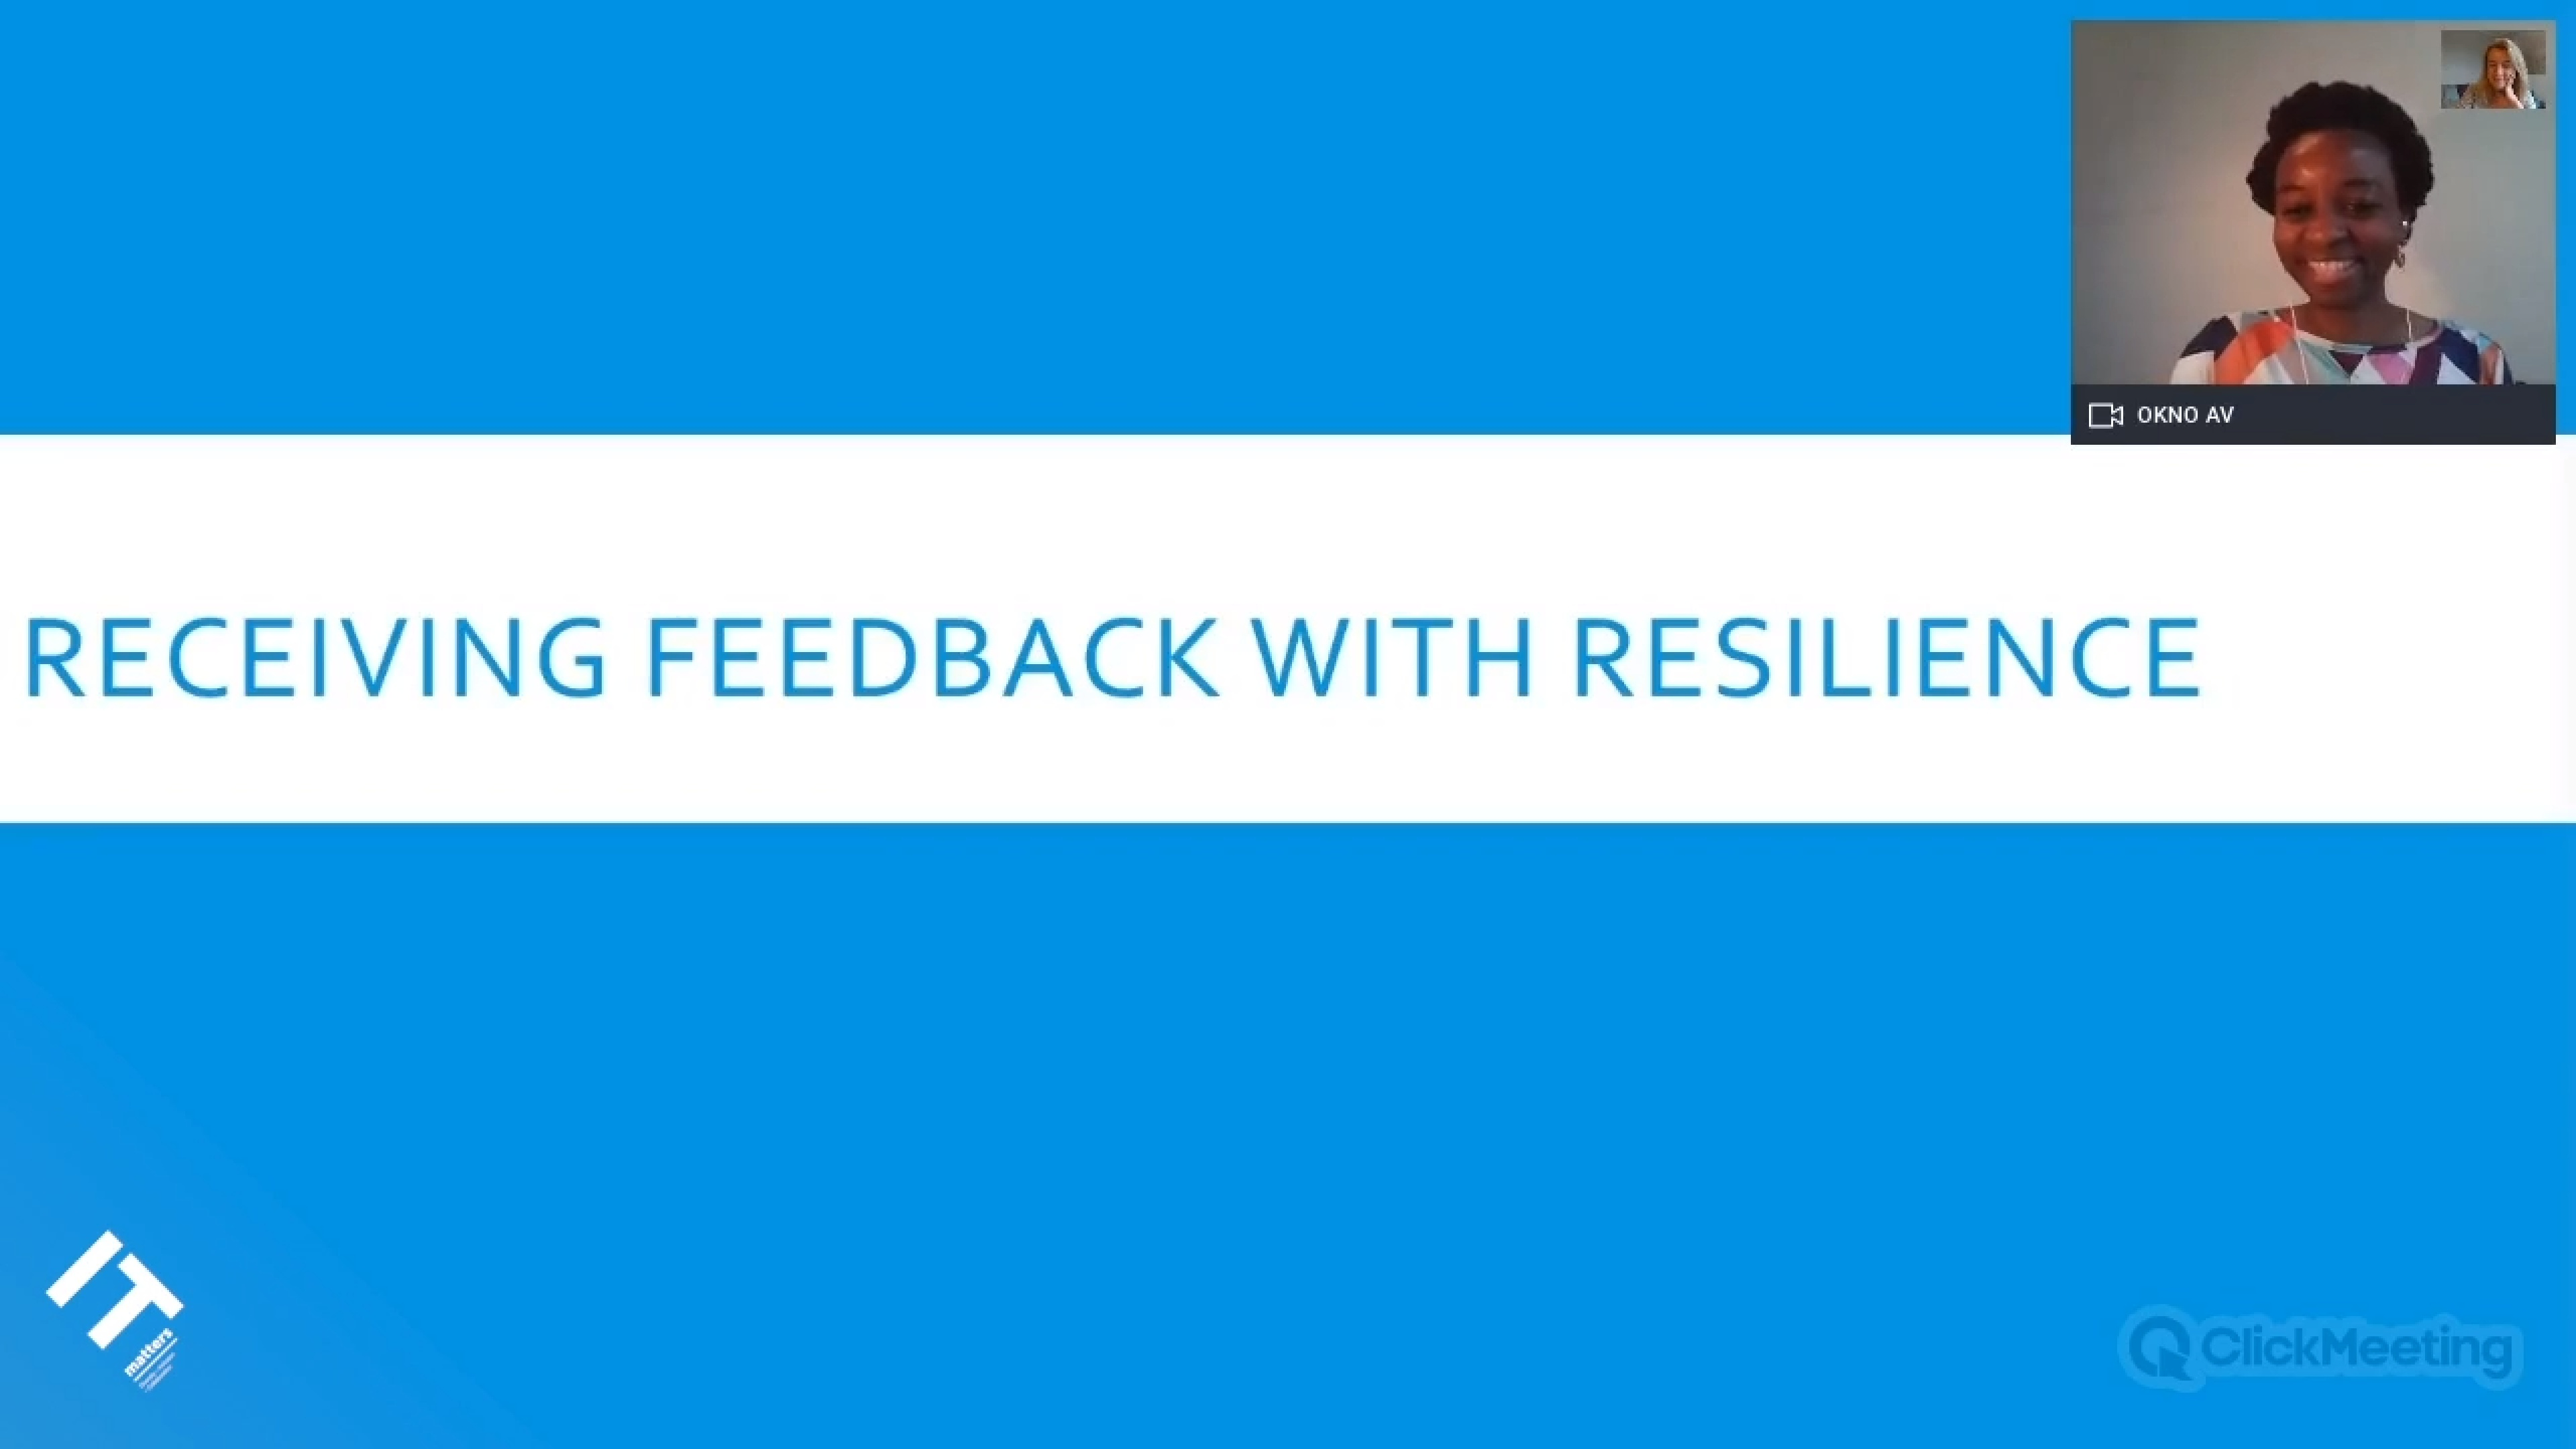 Receiving Feedback With Resilience - Crystal Onyeari Mbanefo